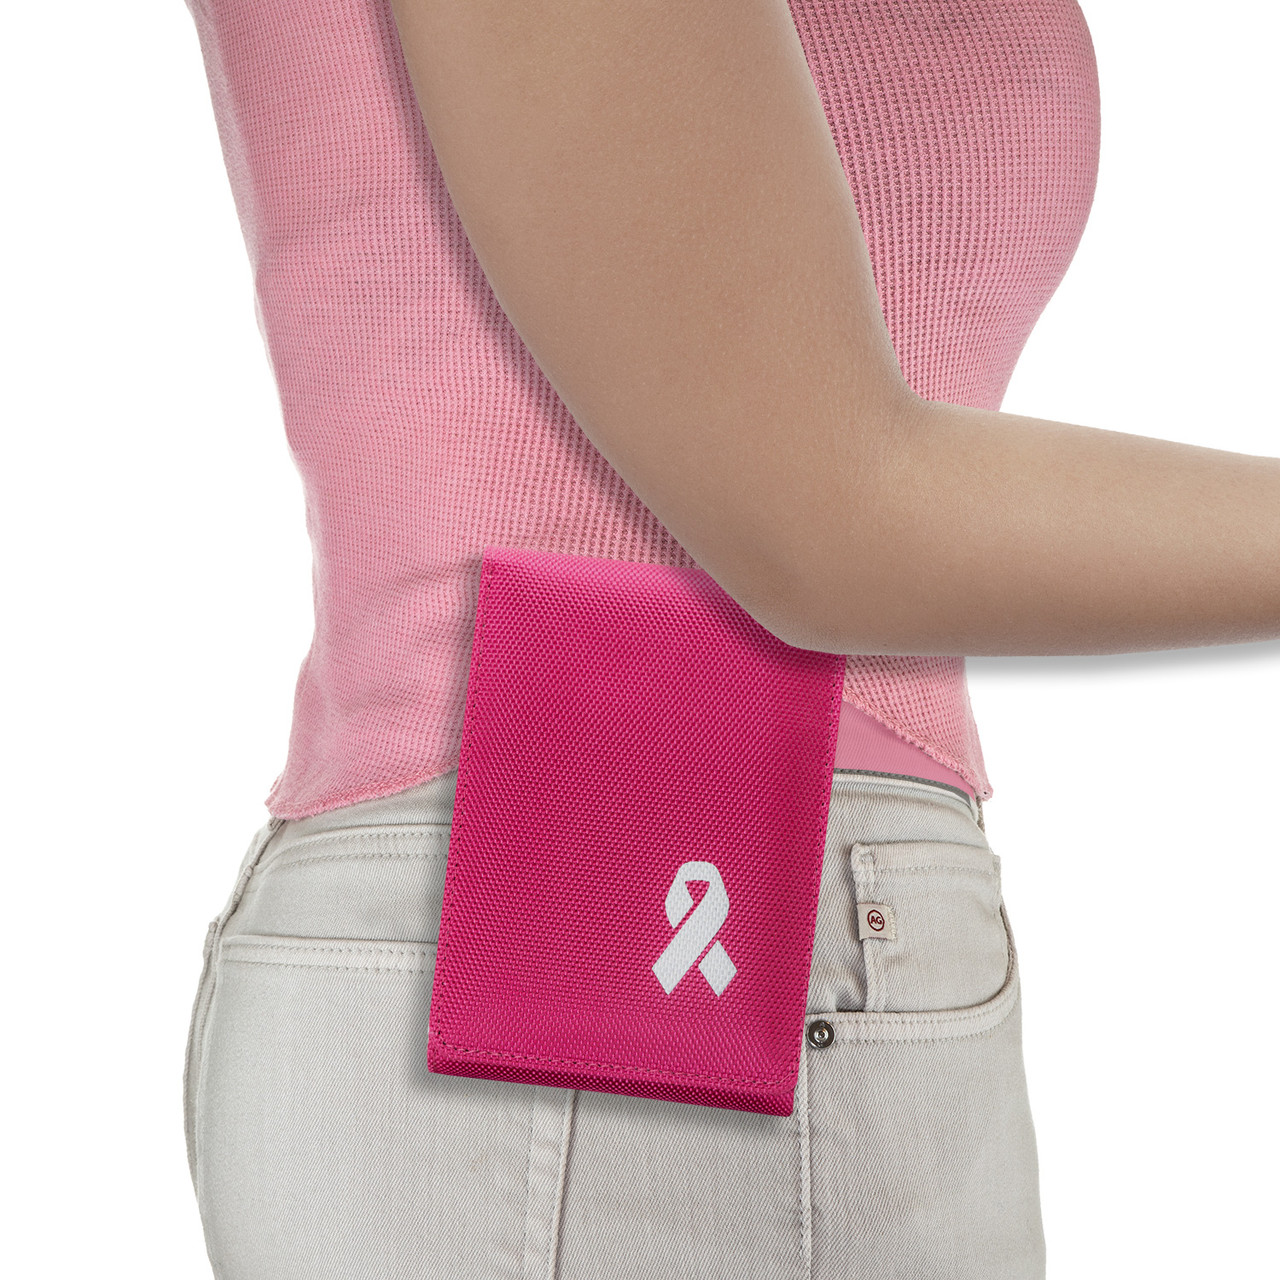 Ruger LC9 Pink Covert Series Holster